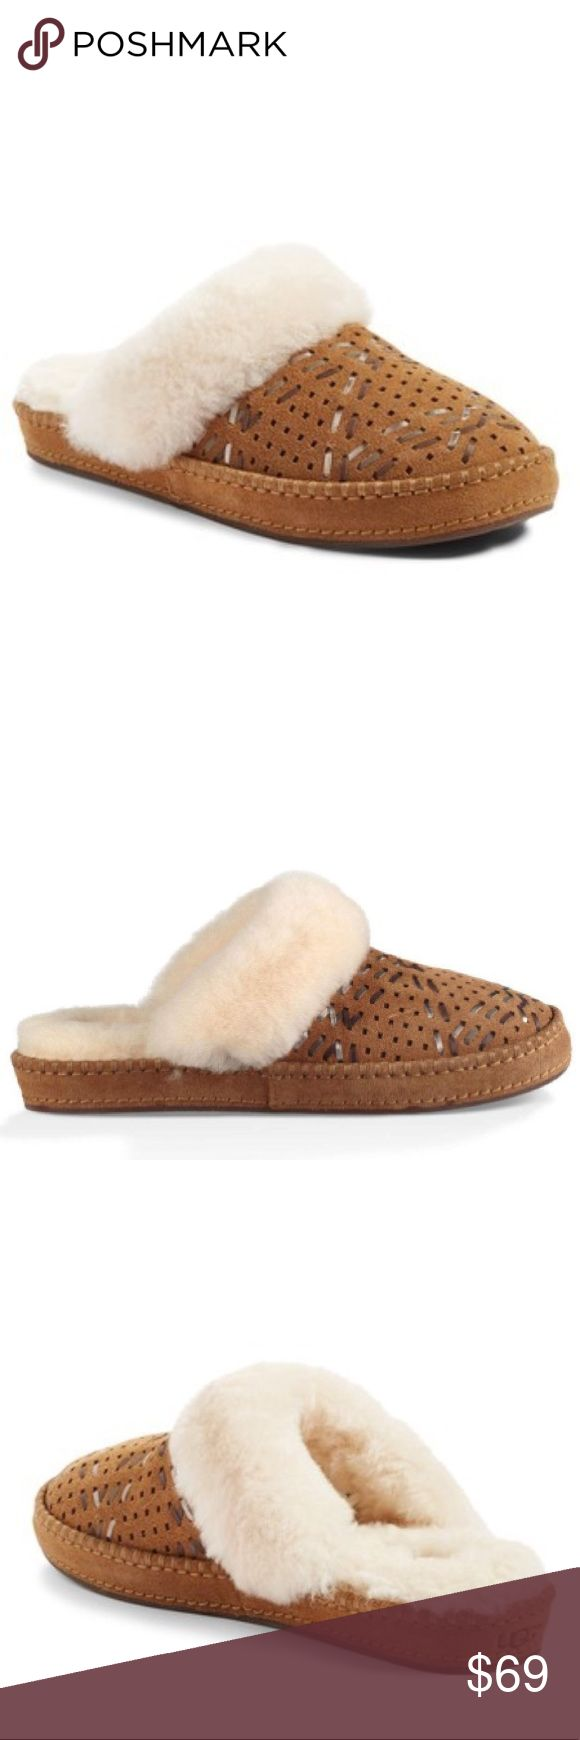 Ugg Aira Tehuano Chestnut Suede Perforated slipper Ugg Aira Tehuano chestnut Suede slippers NWOB   A fluffy, genuine shearling cuff and perforated vamp detailed with woven leather strips define a water-resistant suede slipper set on a decorative stitched sole. The lining is plush UGGpure , a textile made entirely from wool but engineered to look and feel like shearling.  - Round toe - Perforated with metallic lace detail - Slip-on  - UGGpure wool trim and lining - Grip sole - Imported Suede…